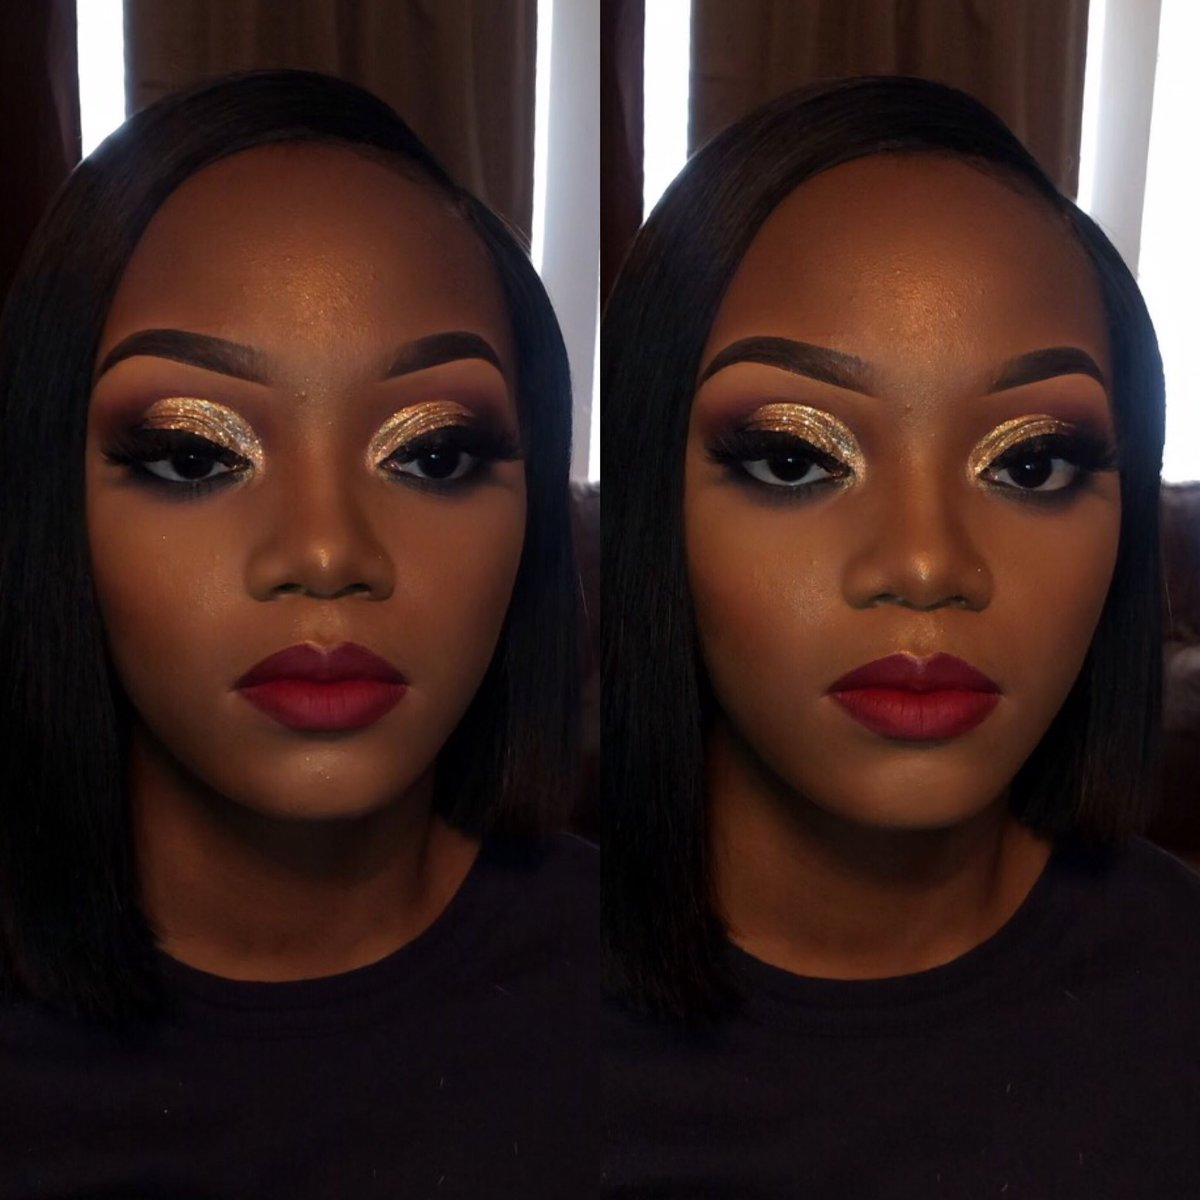 I am now accepting appointments in Albany, GA DM me for inquiresHappy booking  #ASU23 #ASU22 #ASU21 #ASU20 #ASU #albanynotalabama #albanystate #albanymakeupartist #ASUTwitter<br>http://pic.twitter.com/PkILaJIzzF